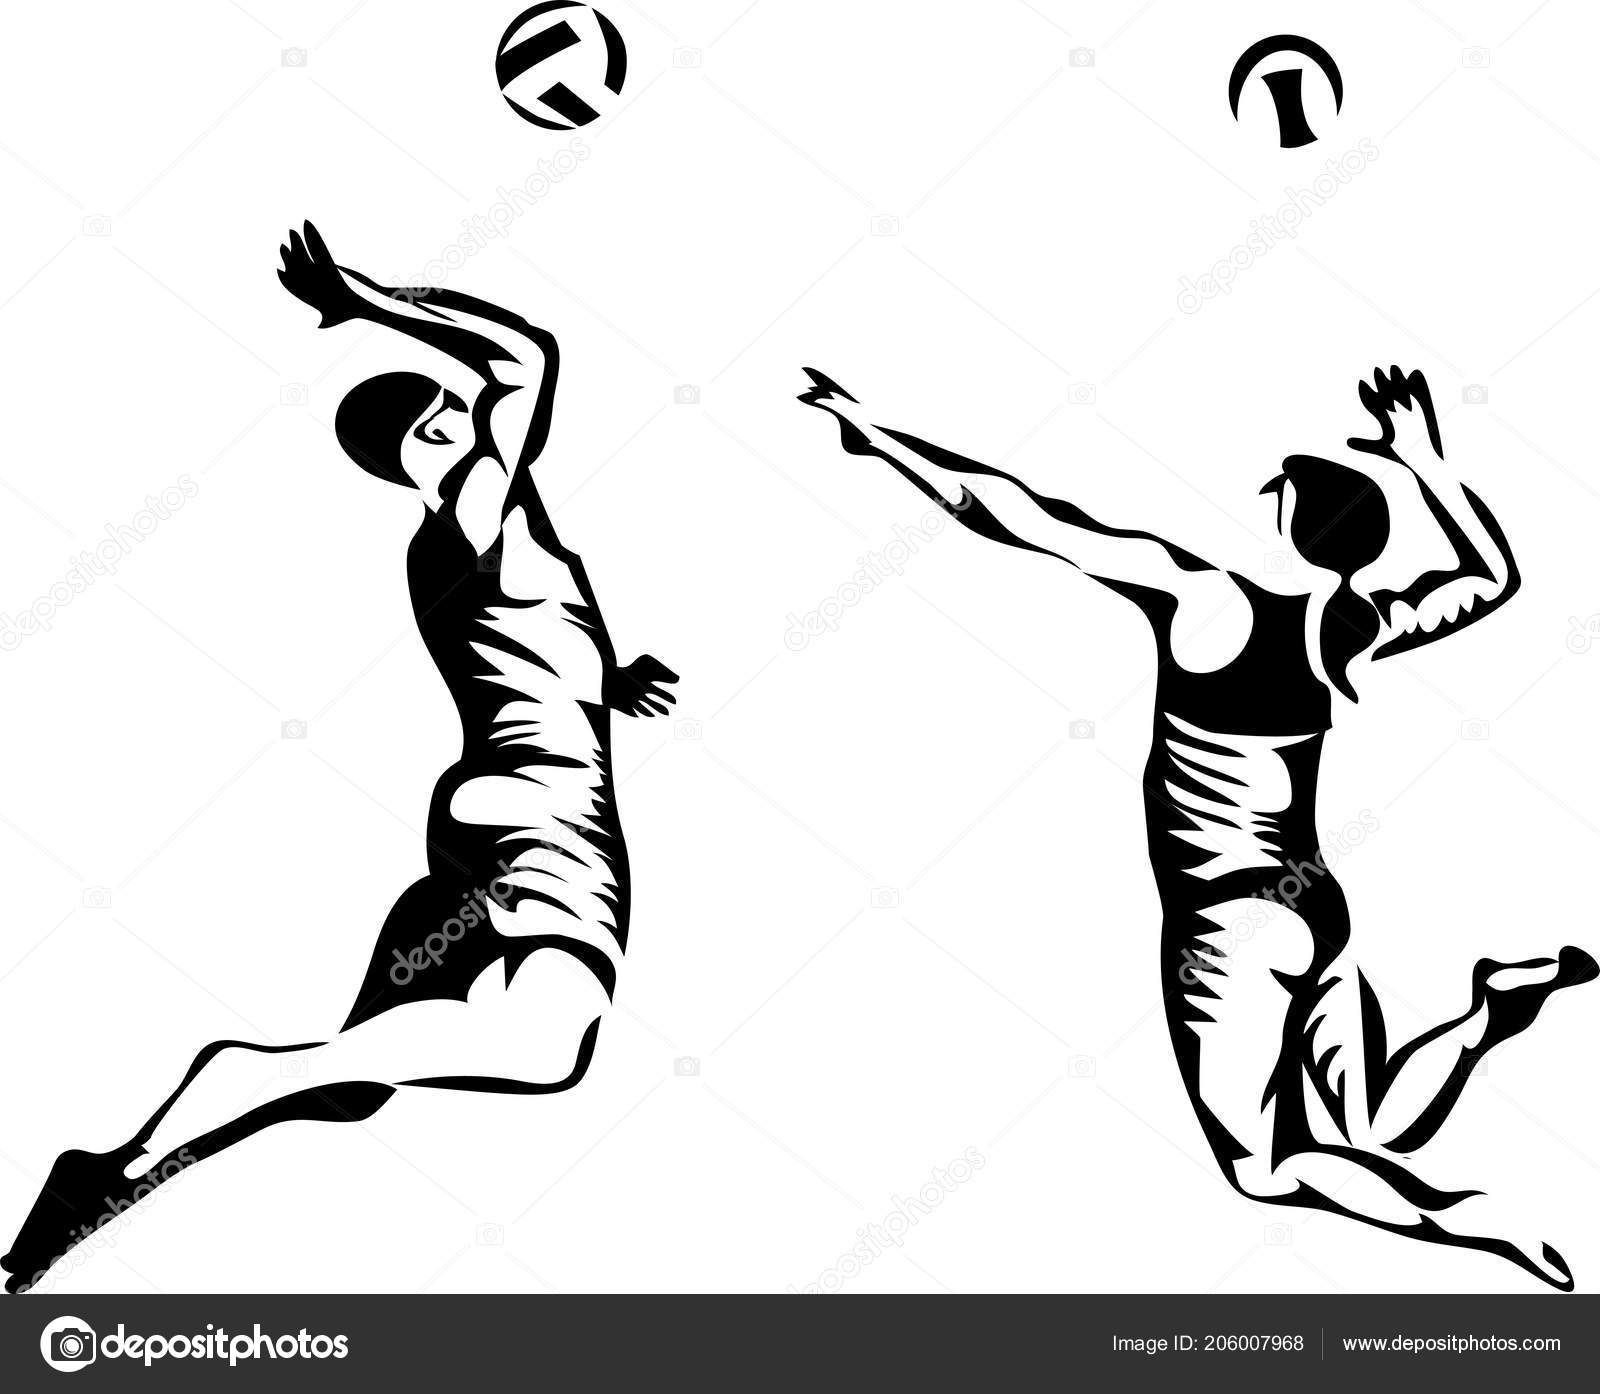 Image Result For Volleyball Drawing Icon Volleyball Drawing Drawings Image